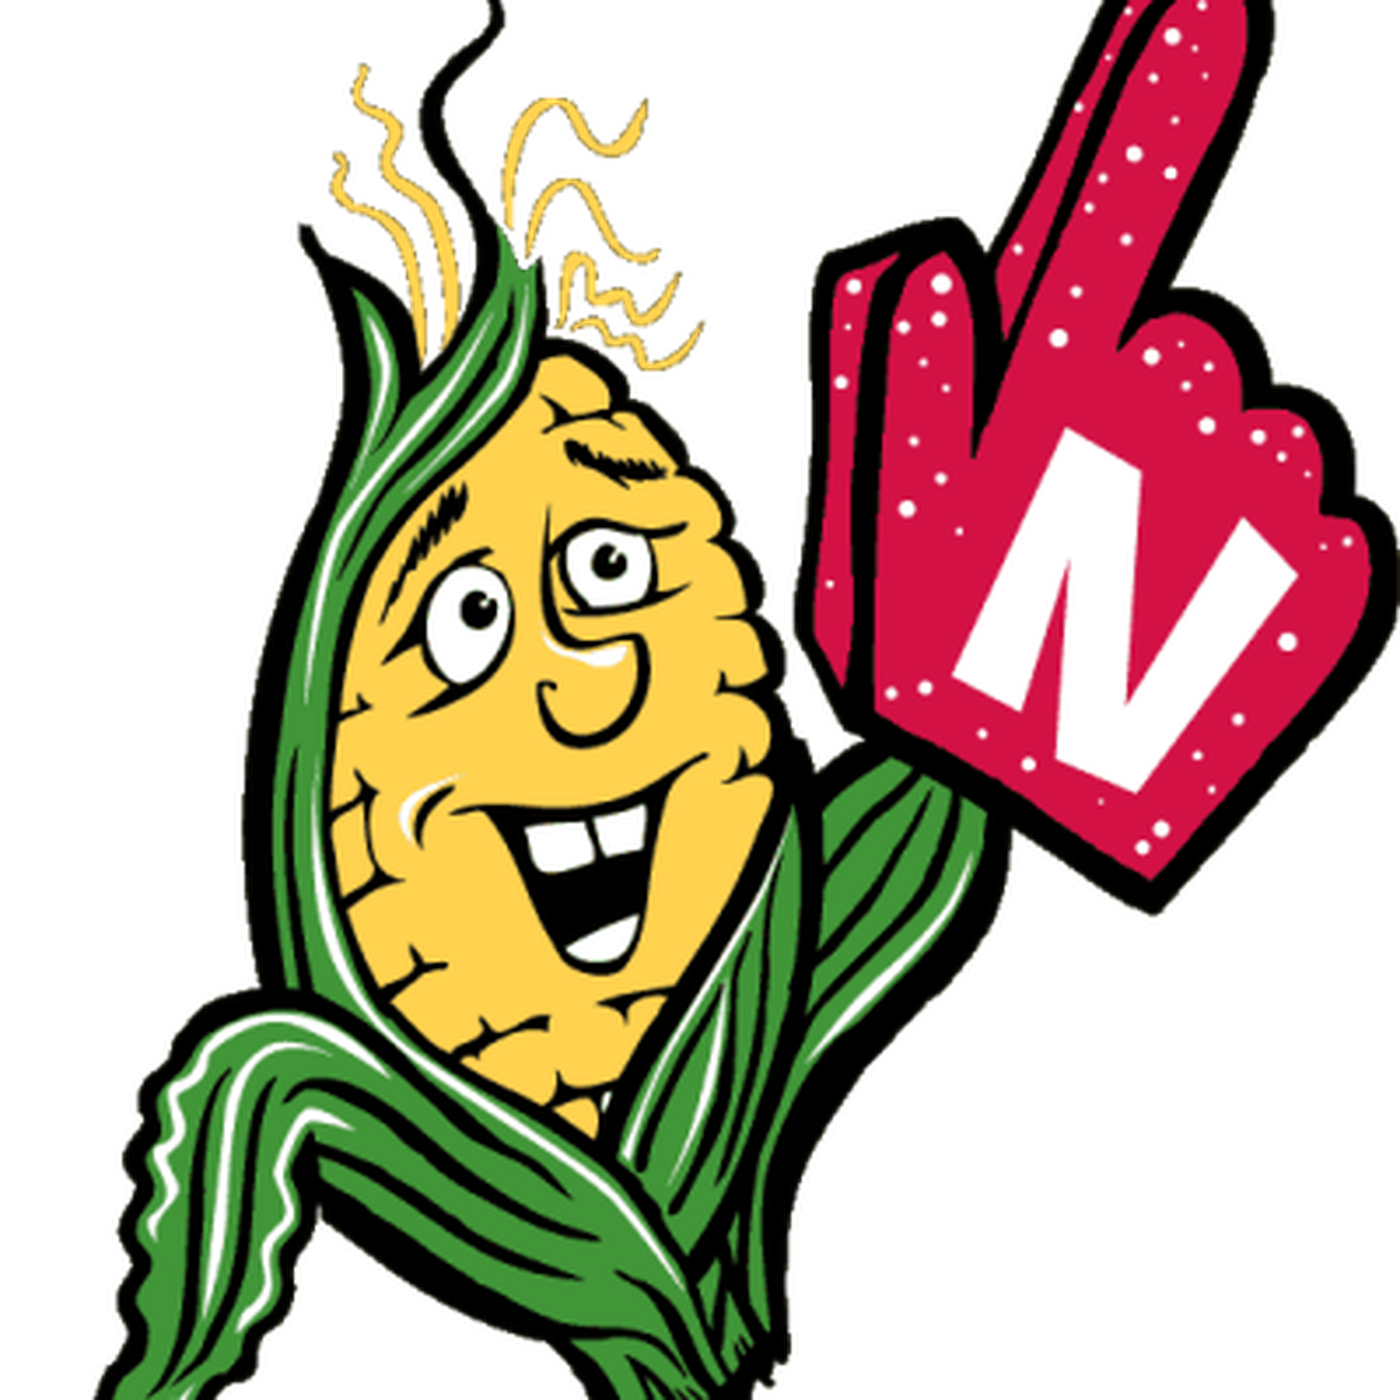 Hick farmer png. Corn nation turns cobby